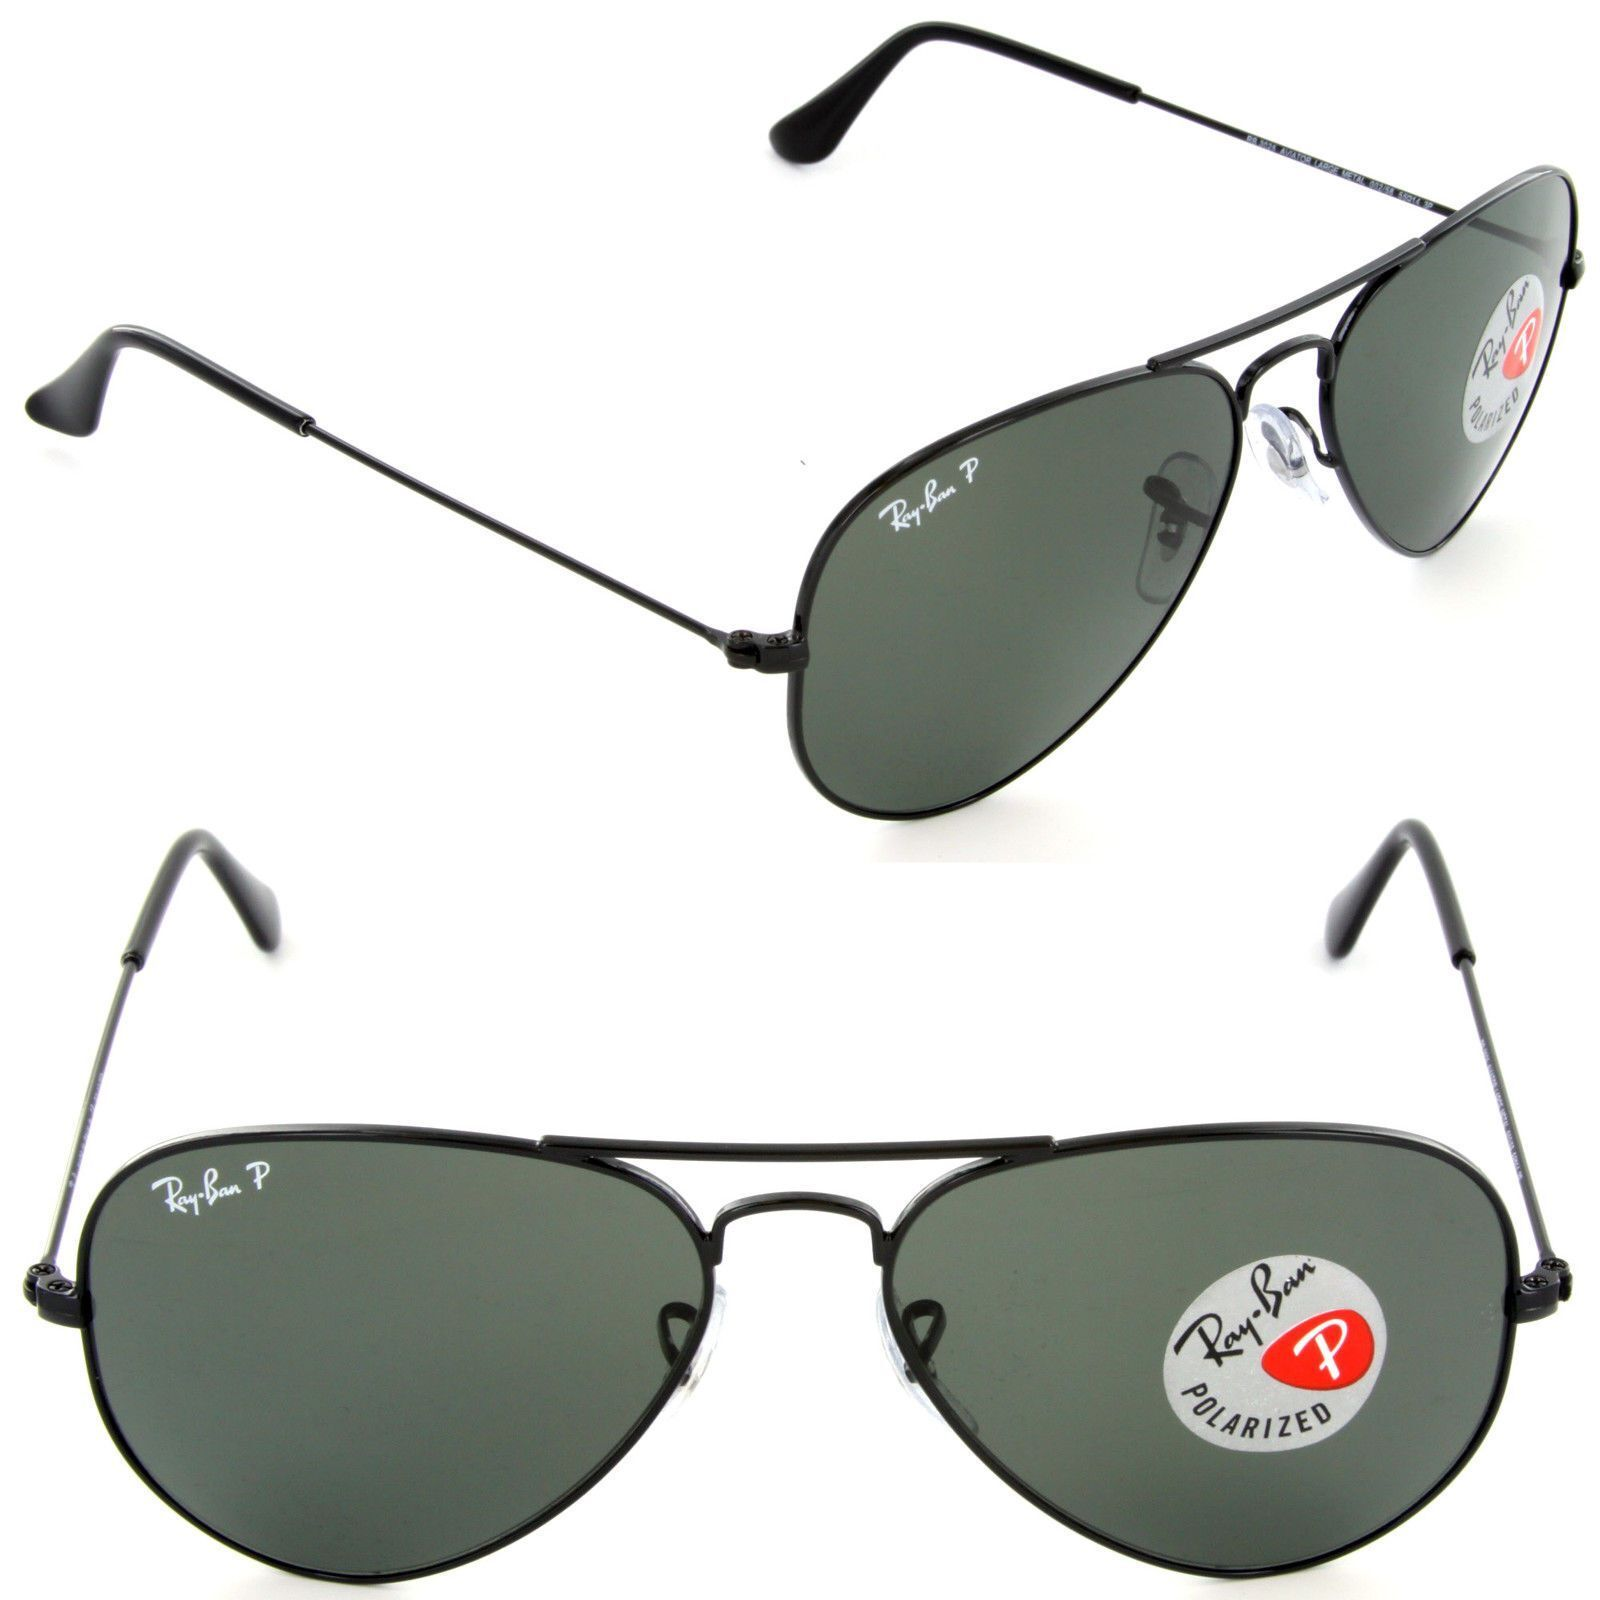 84bebbf74 Ray-Ban RB3025 Unisex Aviator Sunglasses with Black Frame and Green ...